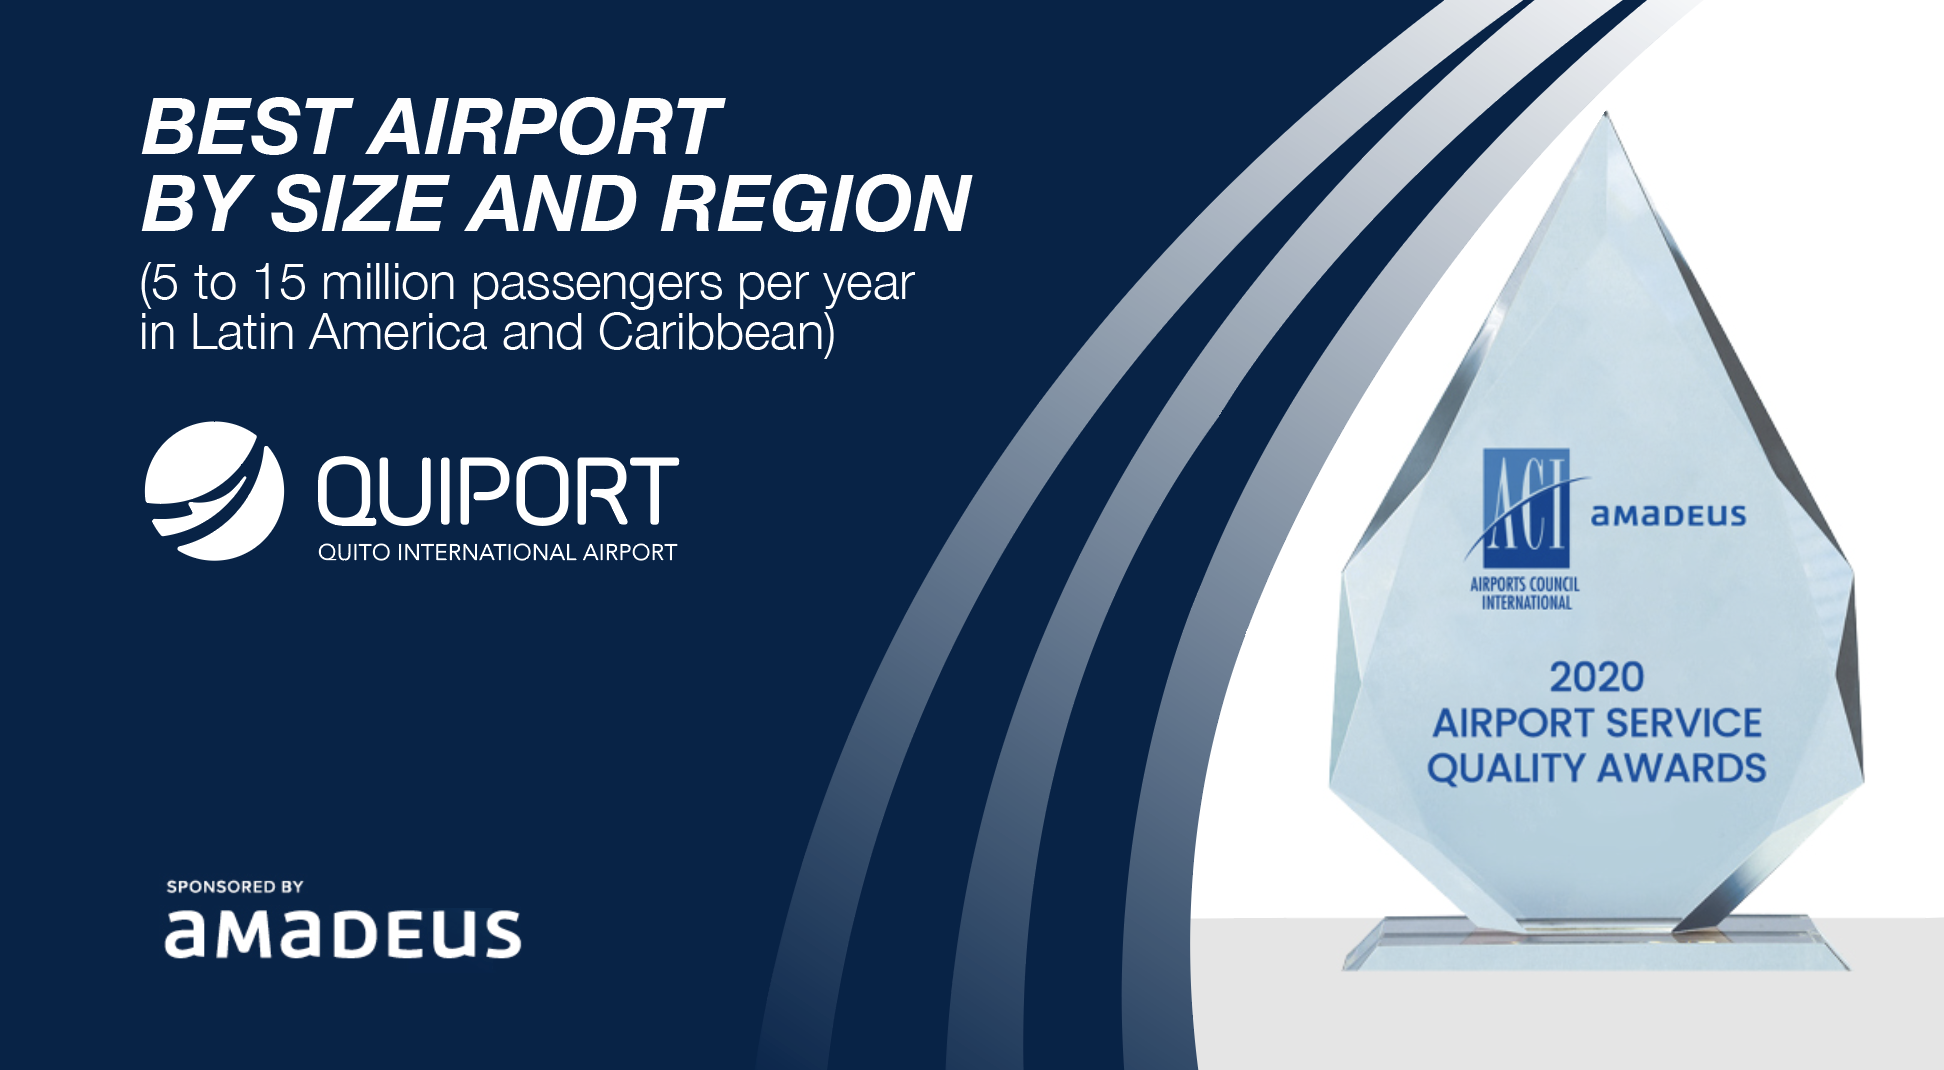 Airports Council International recognizes the Quito airport as the best in Latin America and the Caribbean